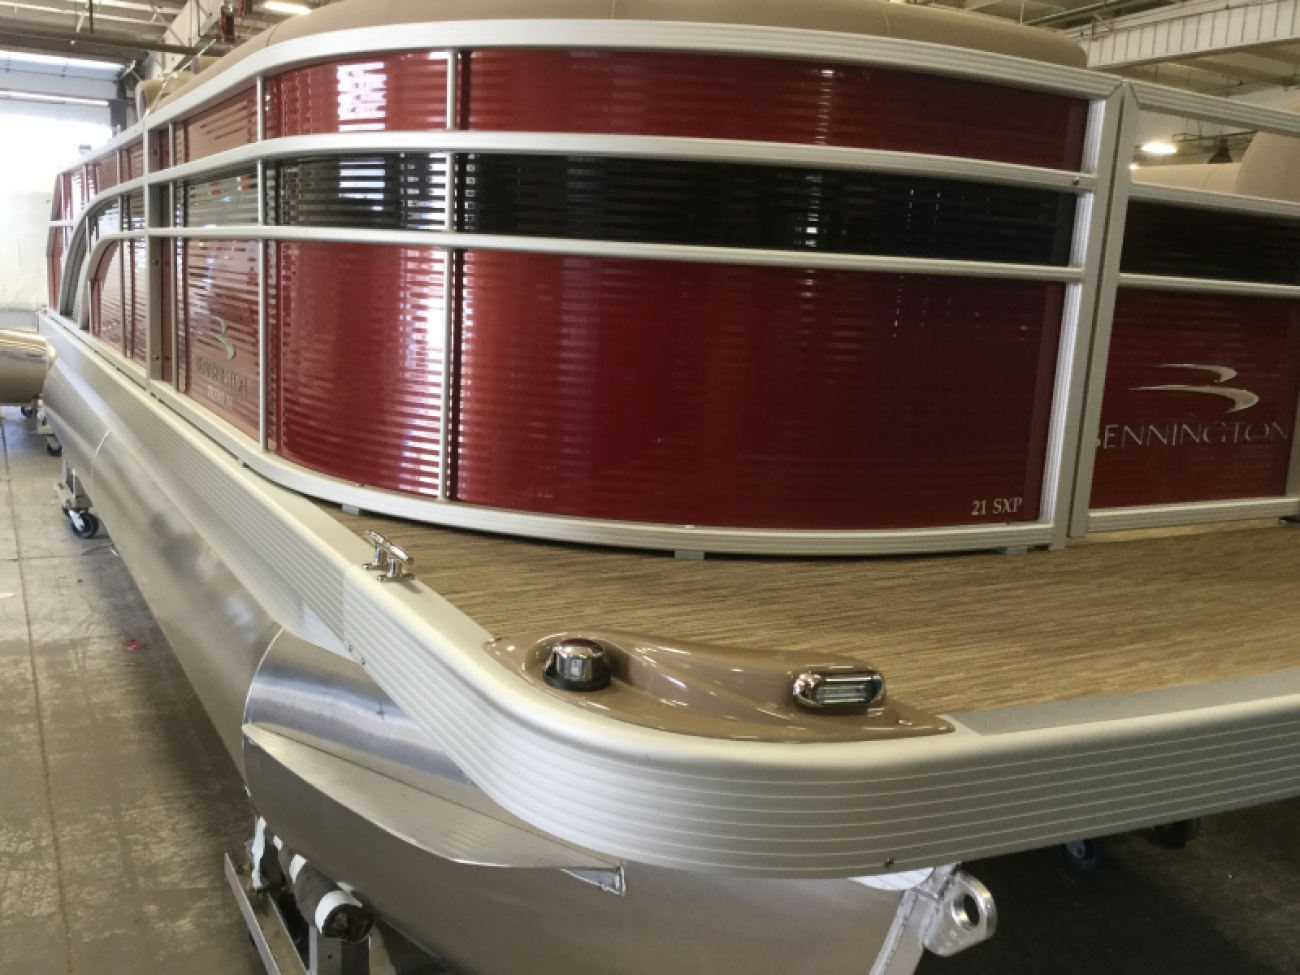 Boats for sale in 04901 - Boat Trader